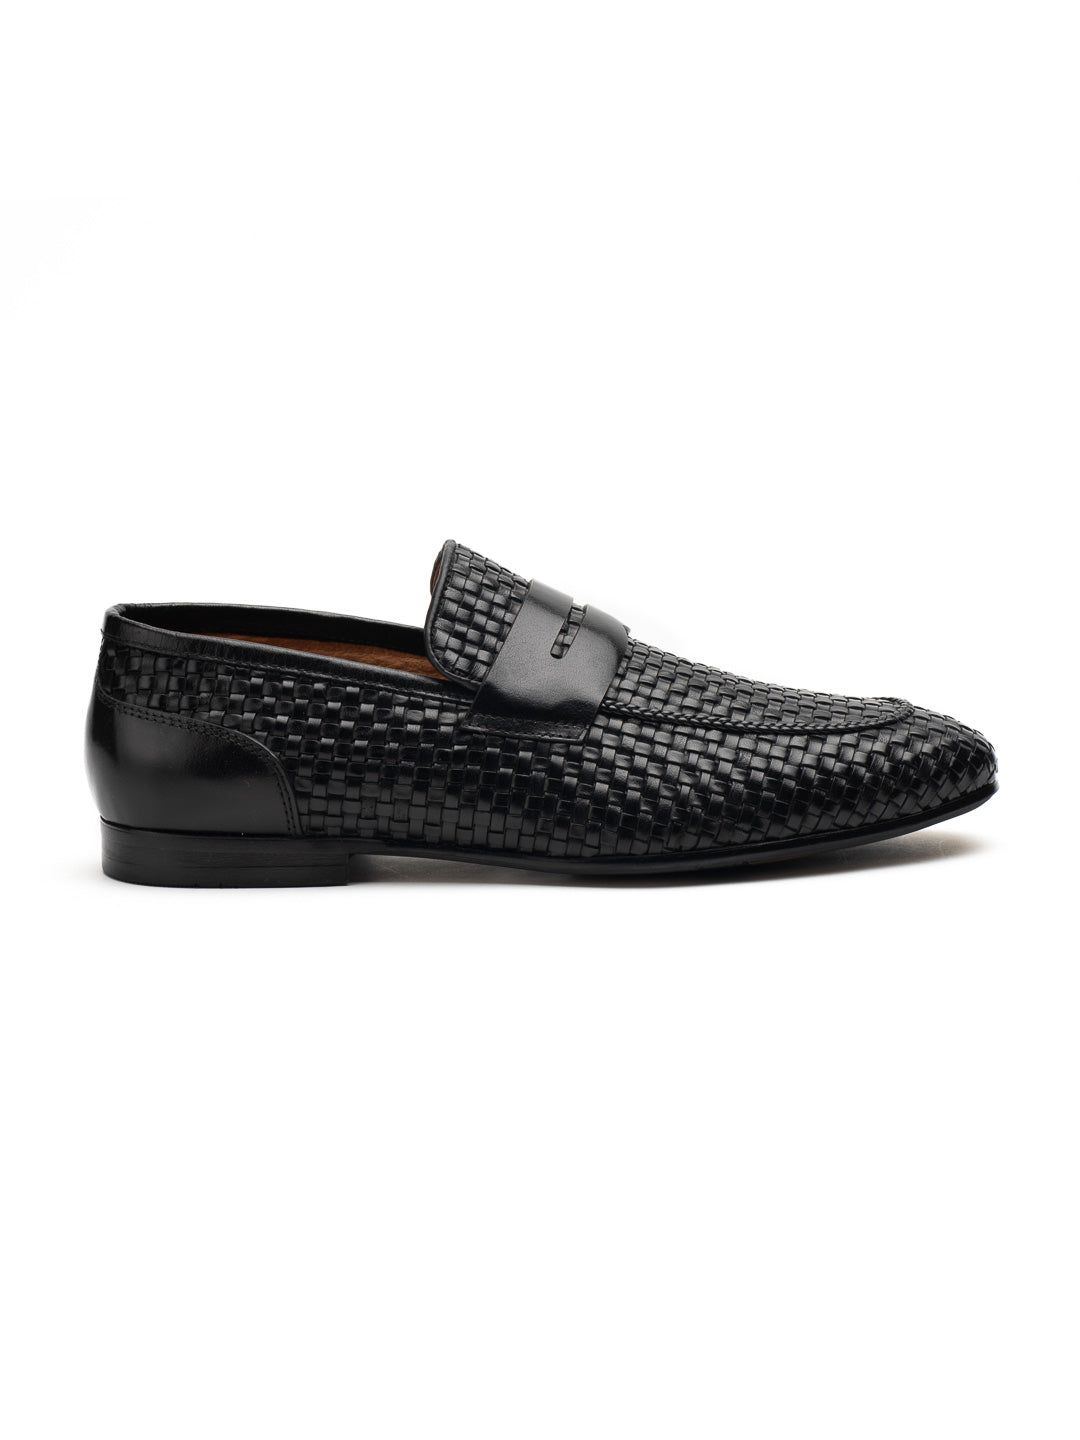 Textured Black Penny Loafers